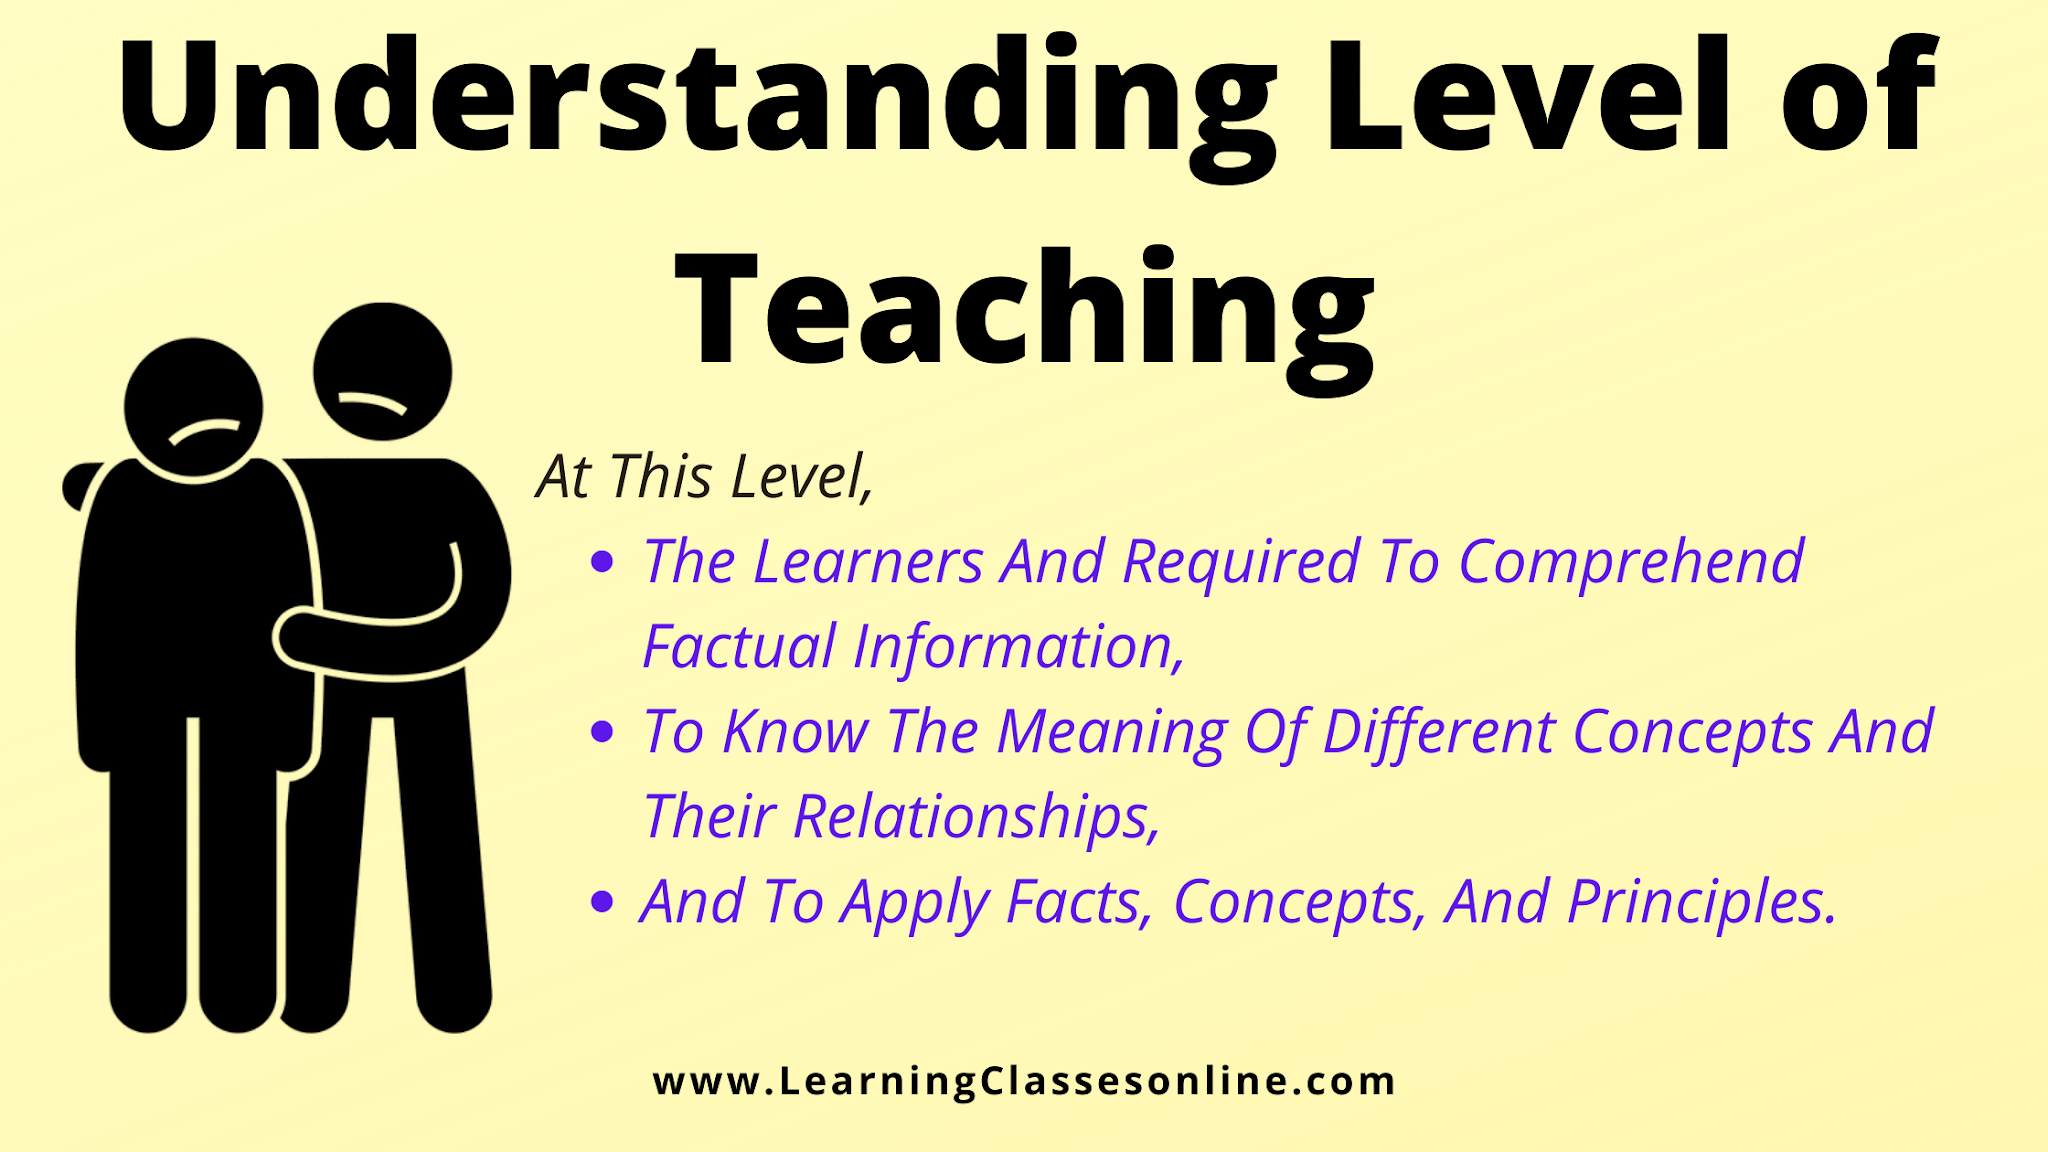 what is understanding level of teaching,levels of teaching ppt pdf notes slideshare wikipedia bed ugc net download, understanding level teaching, 2nd level of teaching, Understanding Level of Teaching: Meaning, Concept and Introduction, Elements, Importance and Suggestions, Herbartian Theory of Apperception Steps